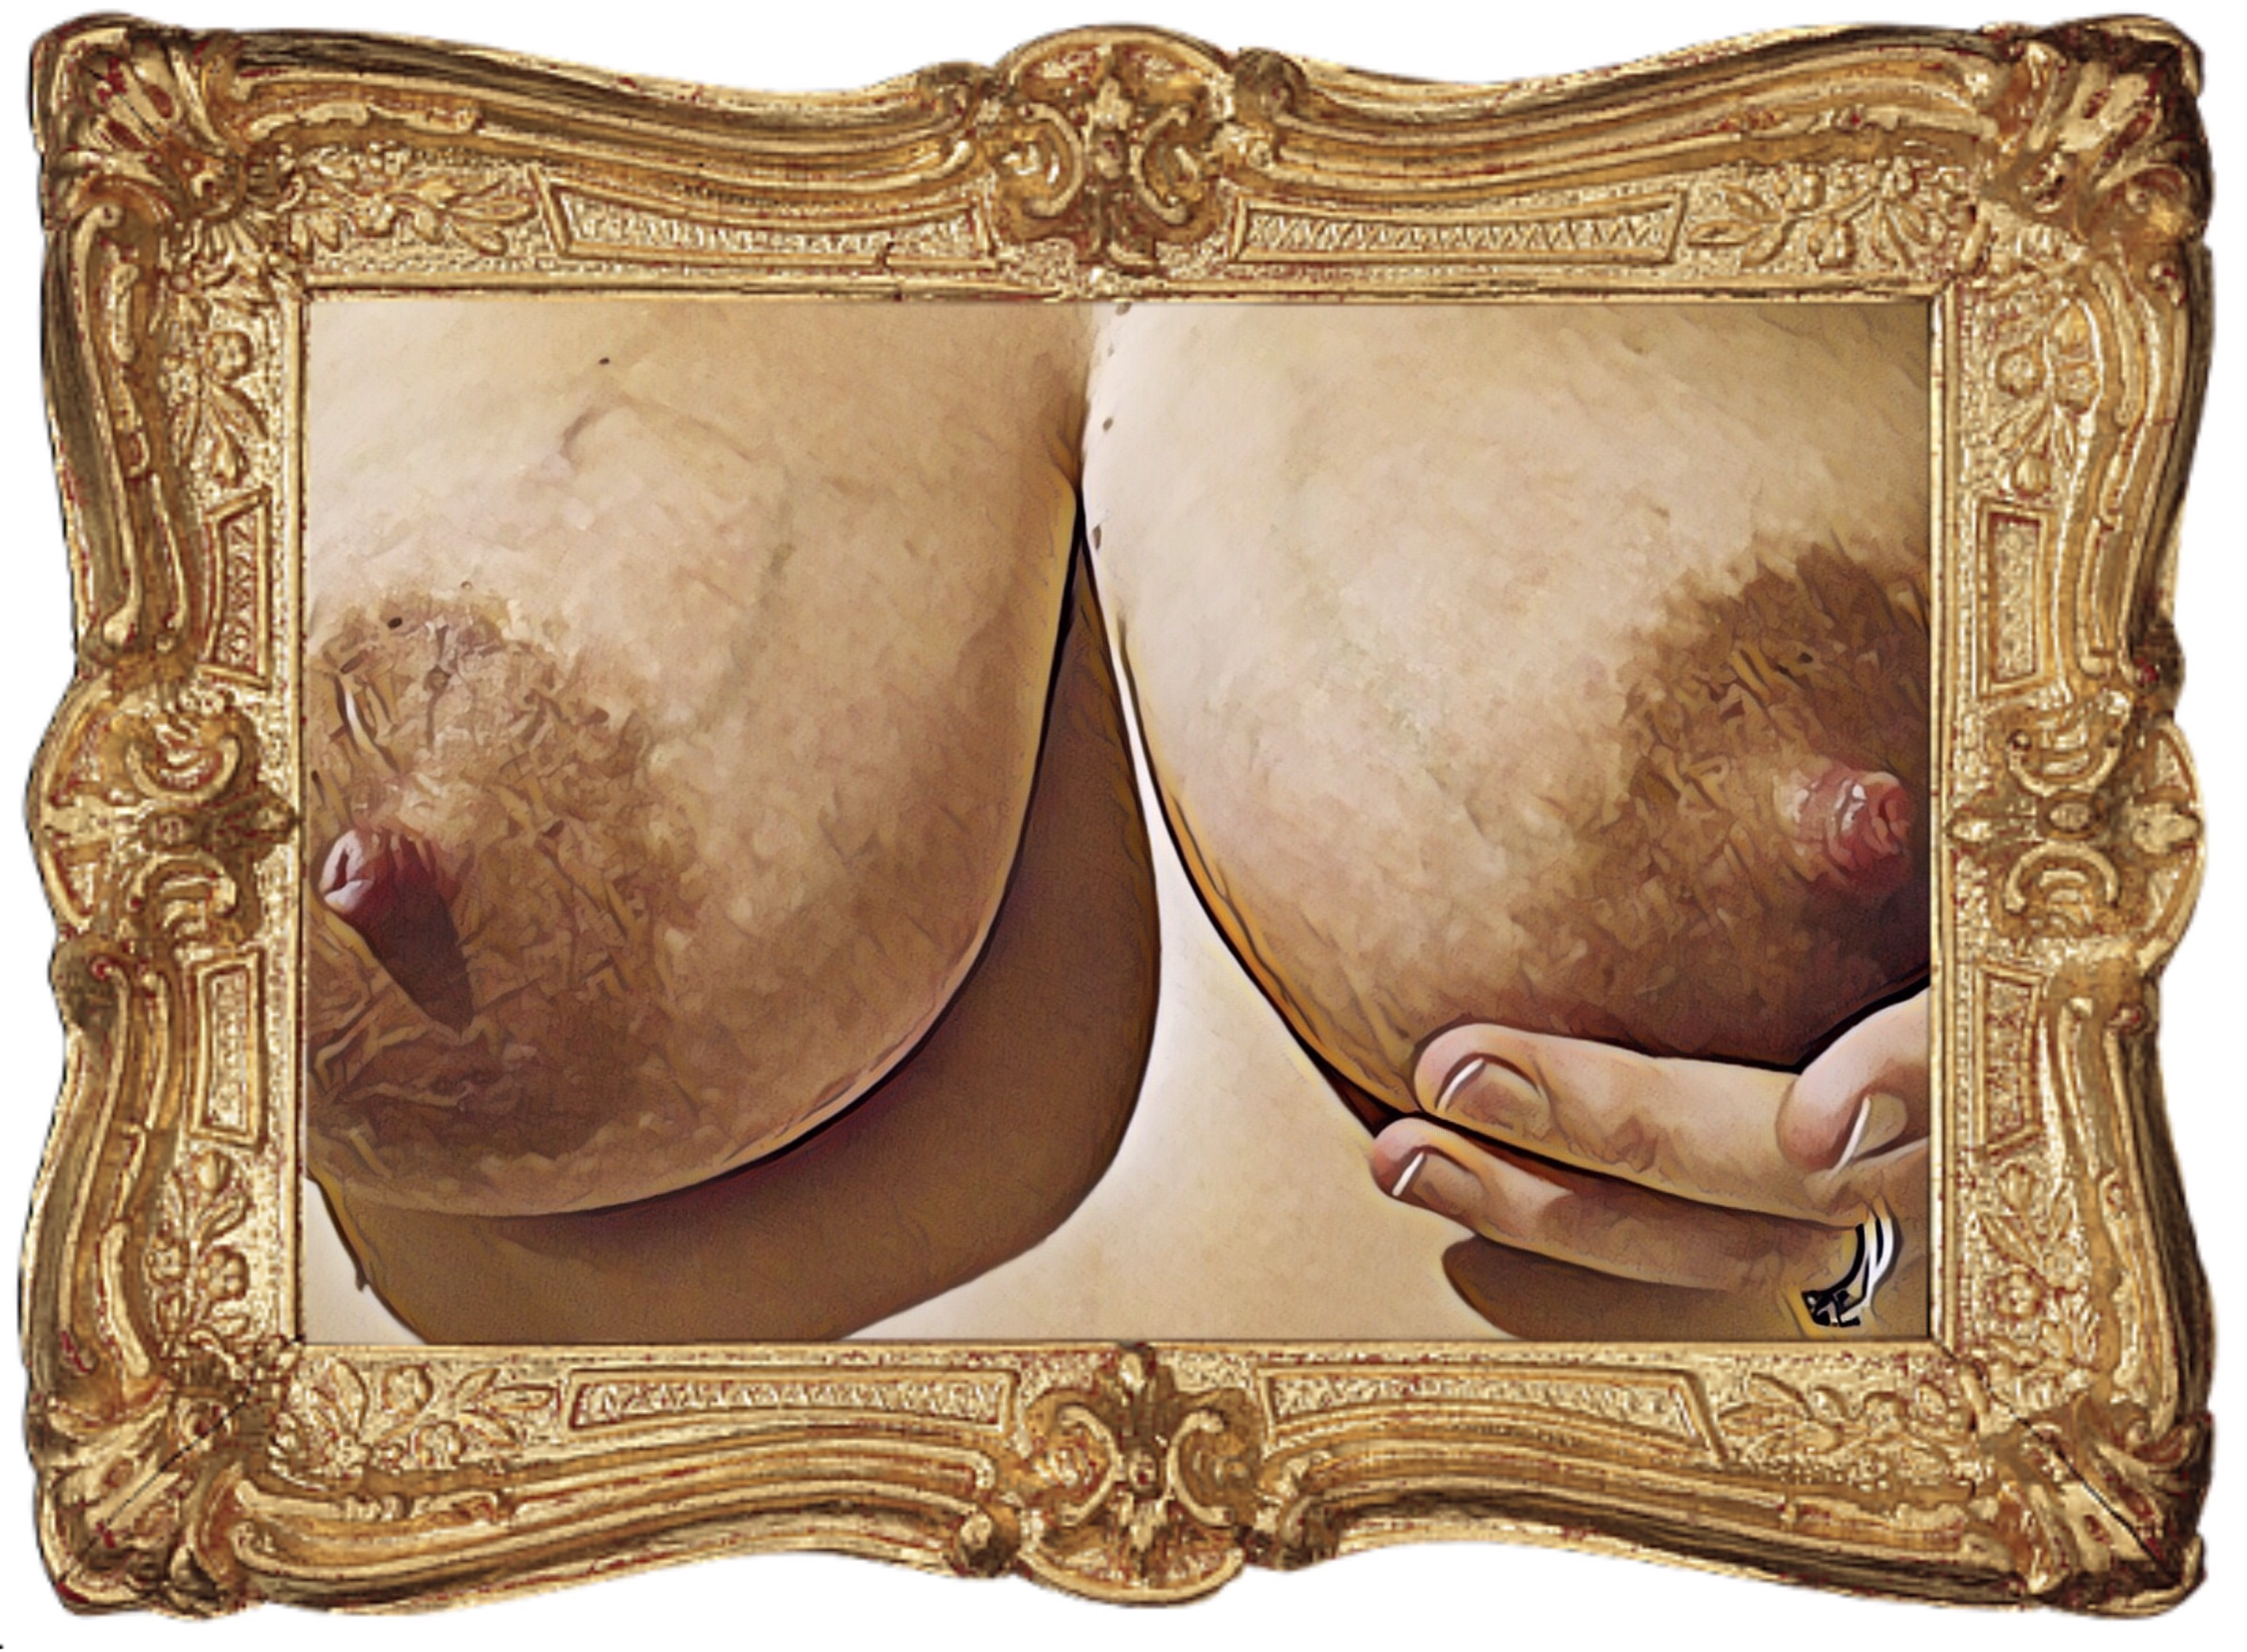 An image of my breasts with my left hand cupping my left breast, modified to look like it was painted as art and surrounded by a gold gilt frame